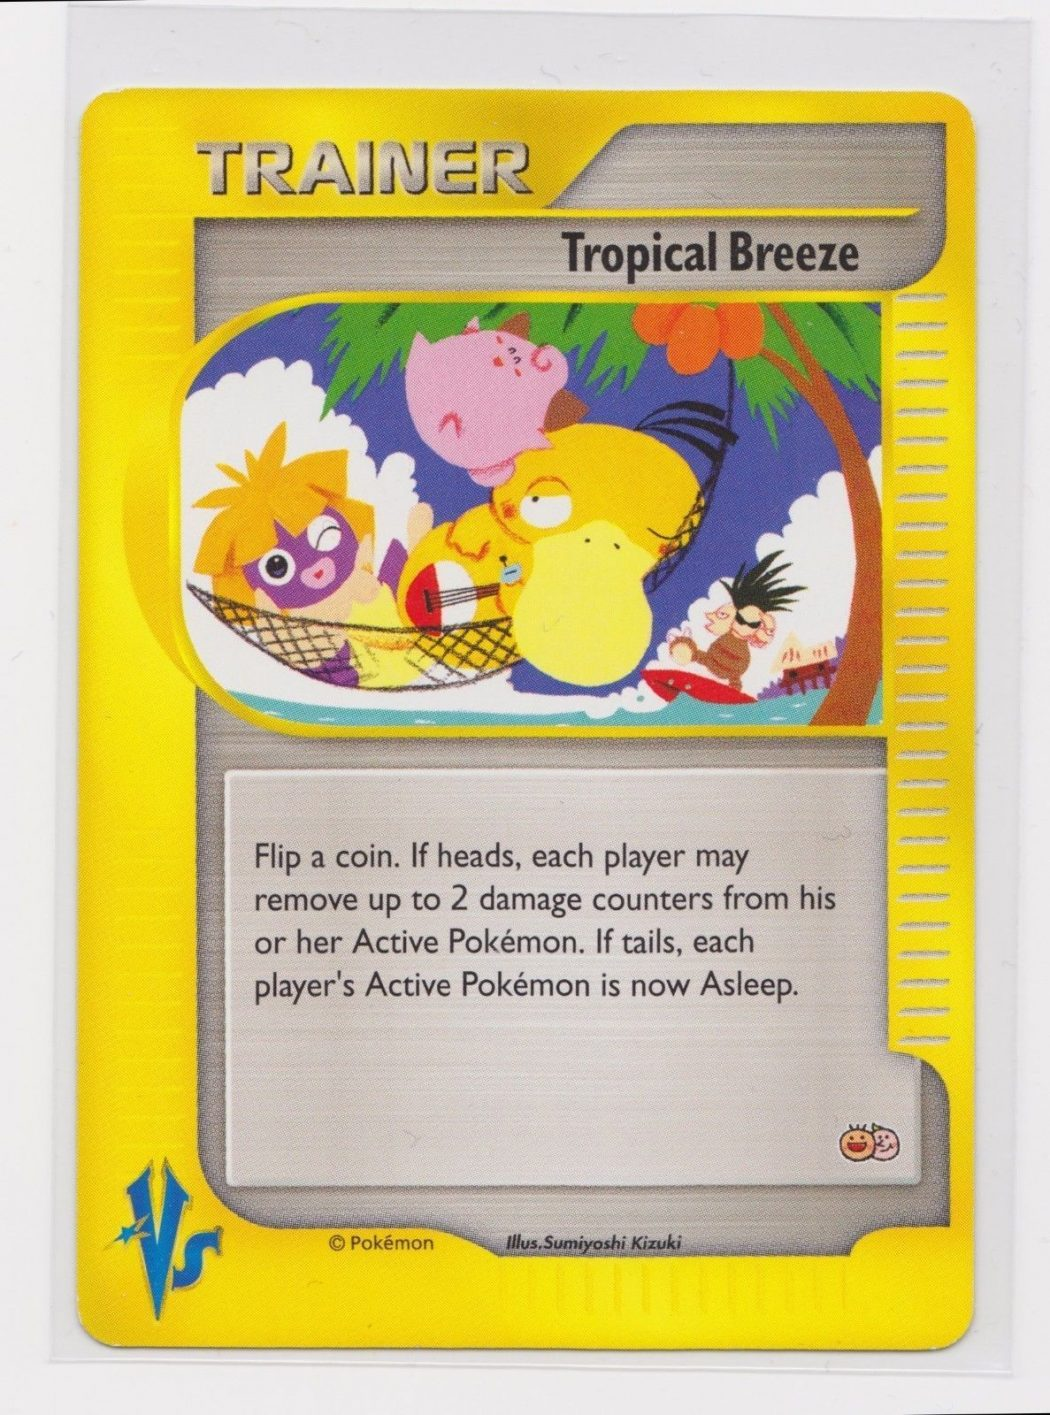 321 Top 10 World's Most Expensive Pokémon Cards 2018-2019